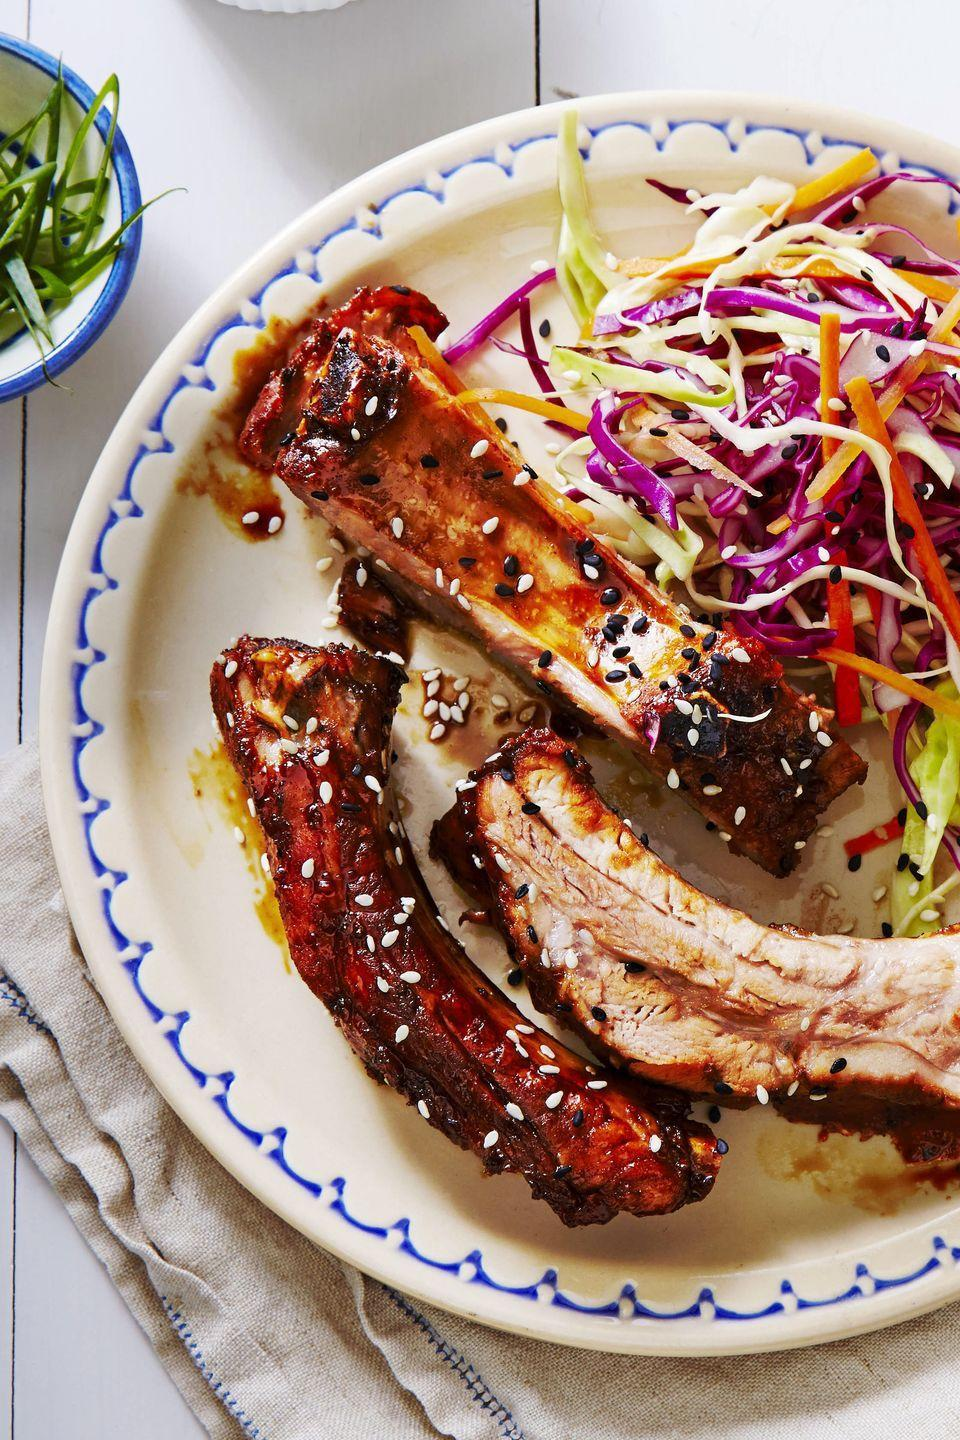 """<p>Simmer low-sodium soy sauce with balsamic vinegar and pressed garlic for a quick DIY teriyaki to baste on these tender slow cooker ribs.</p><p><em><a href=""""https://www.goodhousekeeping.com/food-recipes/easy/a34565/slow-cooked-teriyaki-ribs/"""" rel=""""nofollow noopener"""" target=""""_blank"""" data-ylk=""""slk:Get the recipe for Slow-Cooked Teriyaki Ribs »"""" class=""""link rapid-noclick-resp"""">Get the recipe for Slow-Cooked Teriyaki Ribs »</a></em> </p>"""